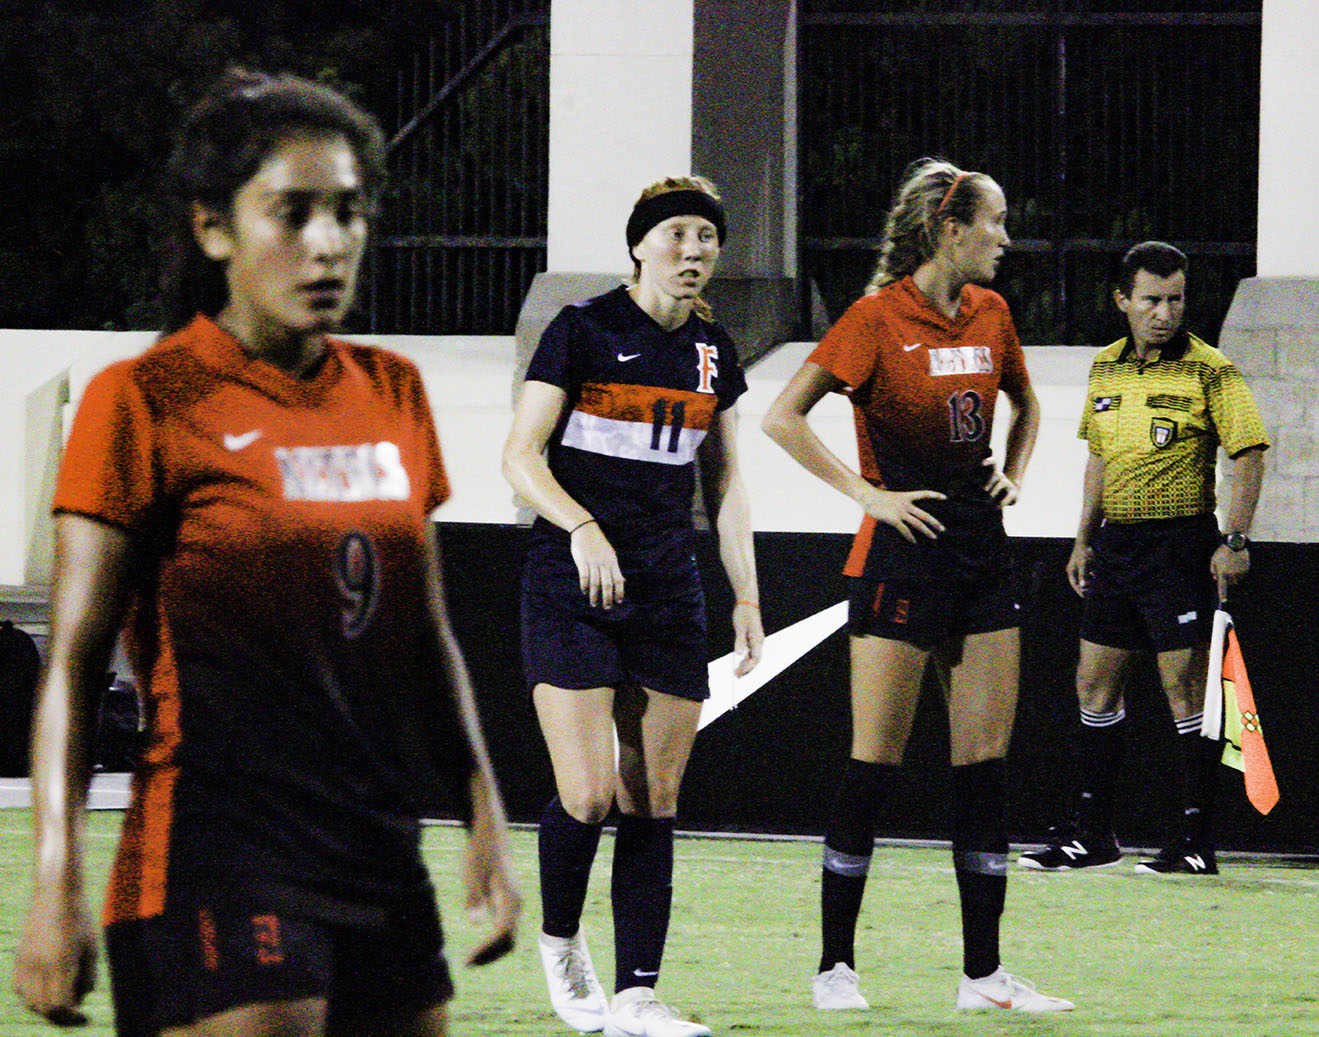 (left to right) Aztecs freshman midfielder Laura Fuentes, CSUF sophomore midfielder Haley Brown and SDSU freshman defender Lauren Dicus stand on the pitch during a break in the action of an exhibition match on Aug. 10 at the SDSU Sports Deck. The Aztecs lost the match 2-1.